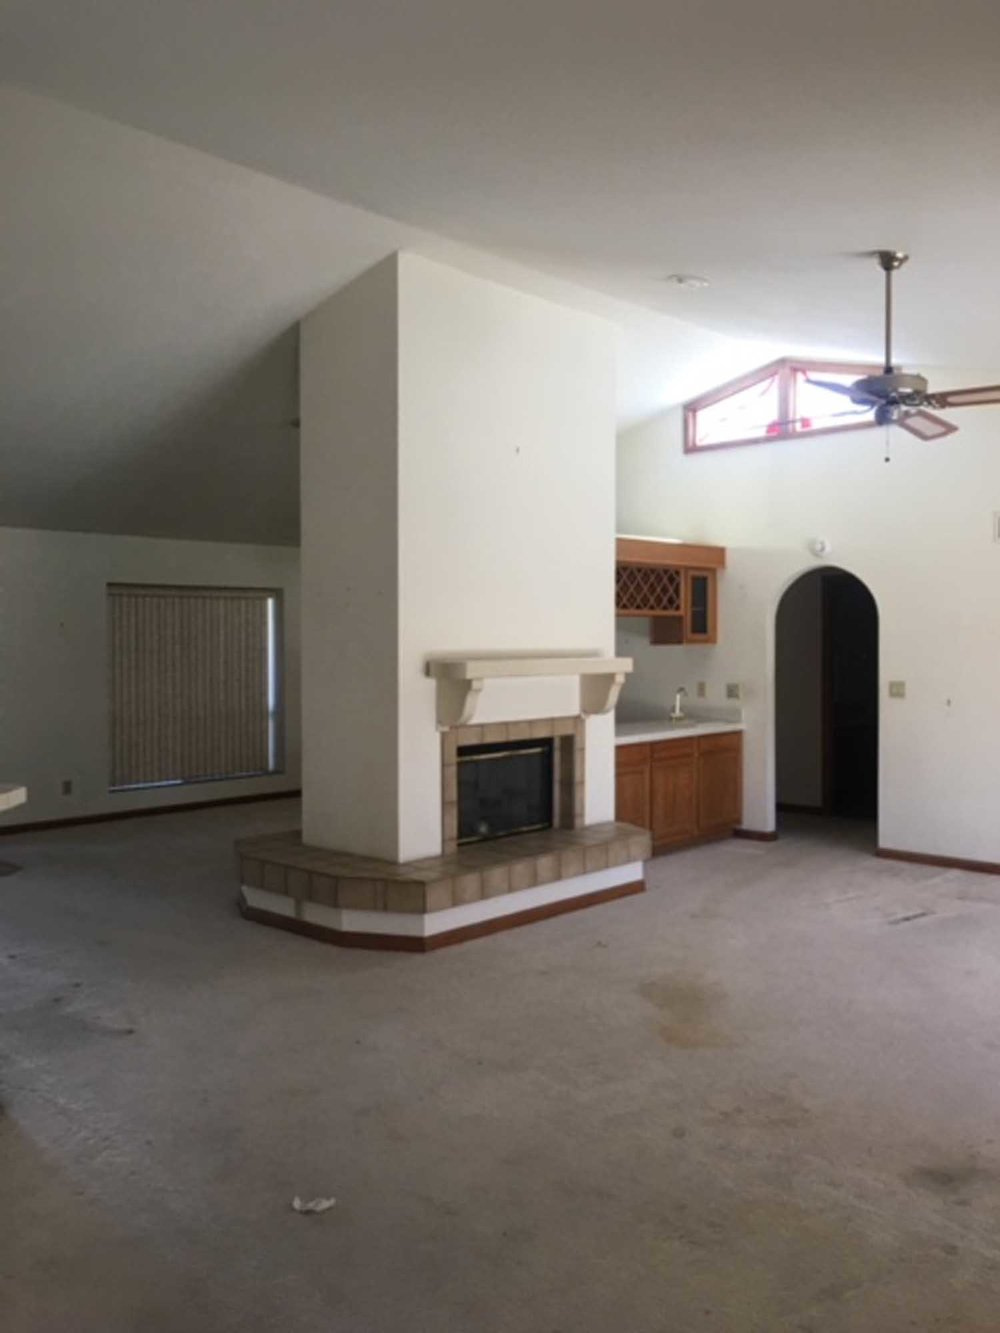 An old kitchen room with fireplace